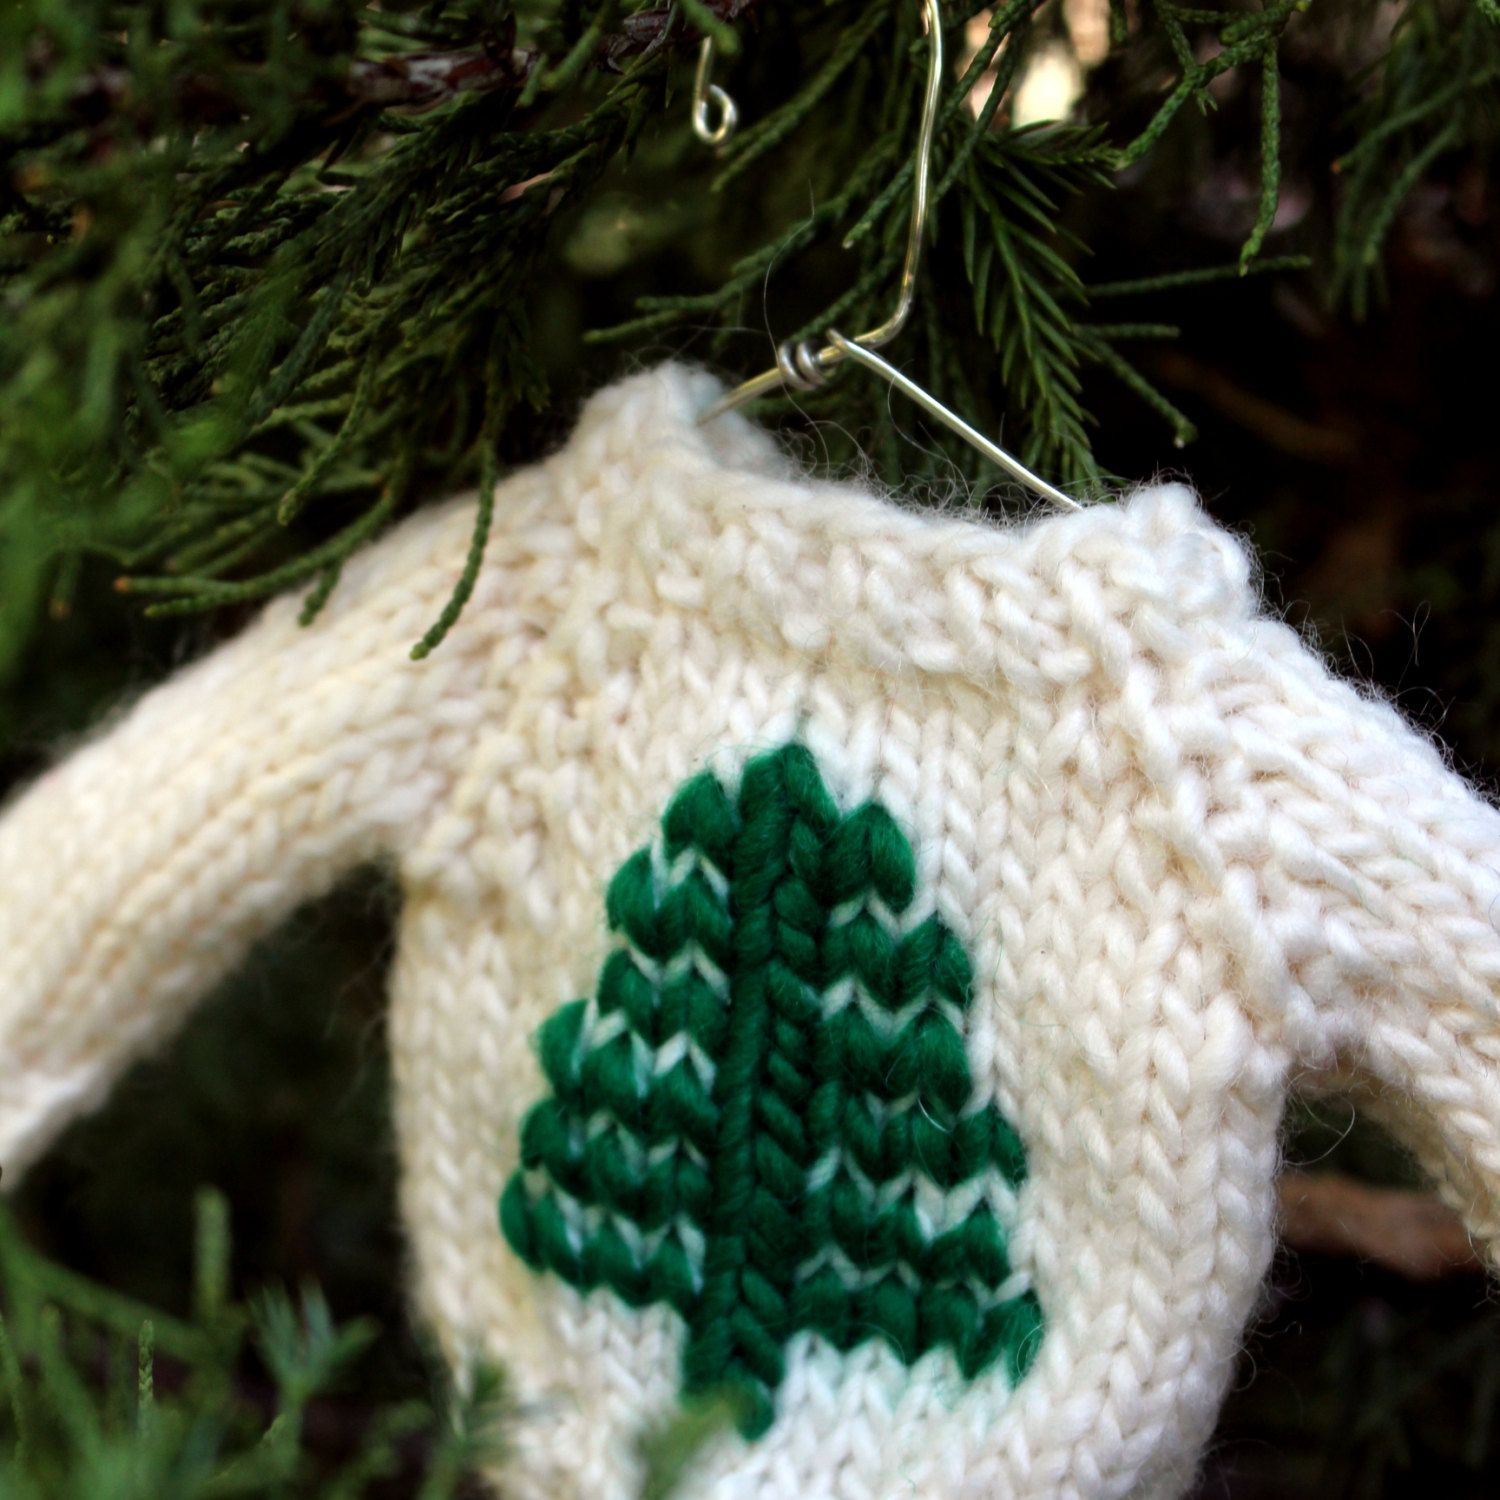 Pattern ornament google decor new year pinterest christmas knitting pattern tree mini by fiftyfourtenstudio measures x sleeve end to sleeve end x across cest knit bankloansurffo Images